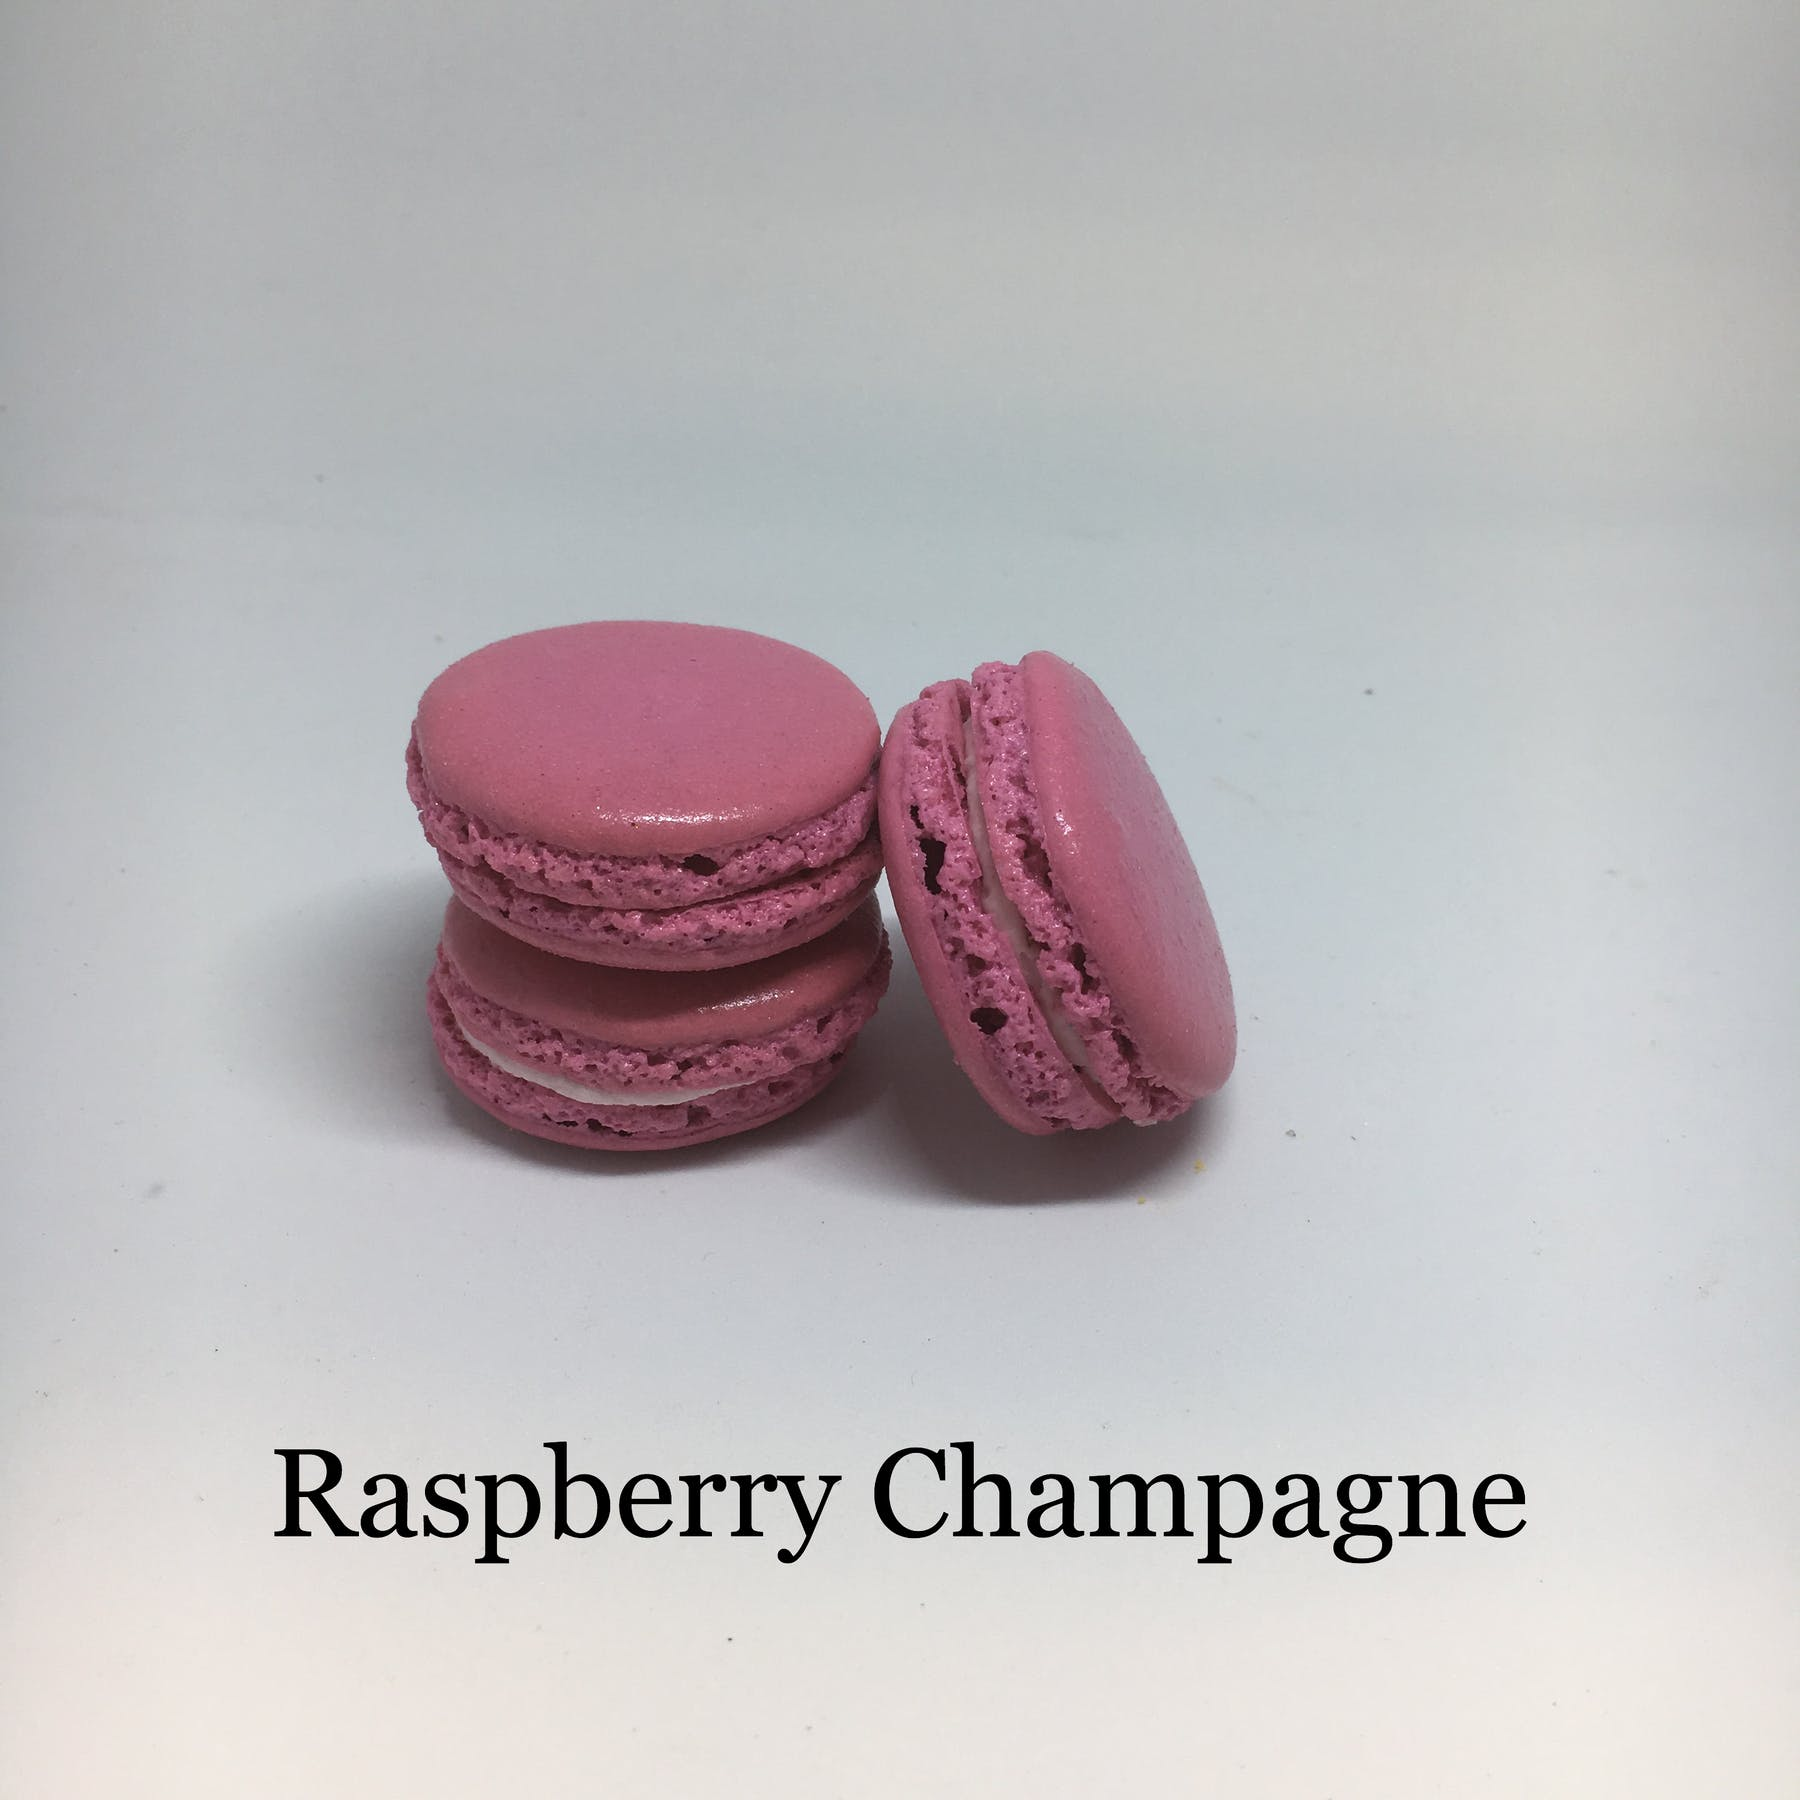 raspberry champagne flavored macarons